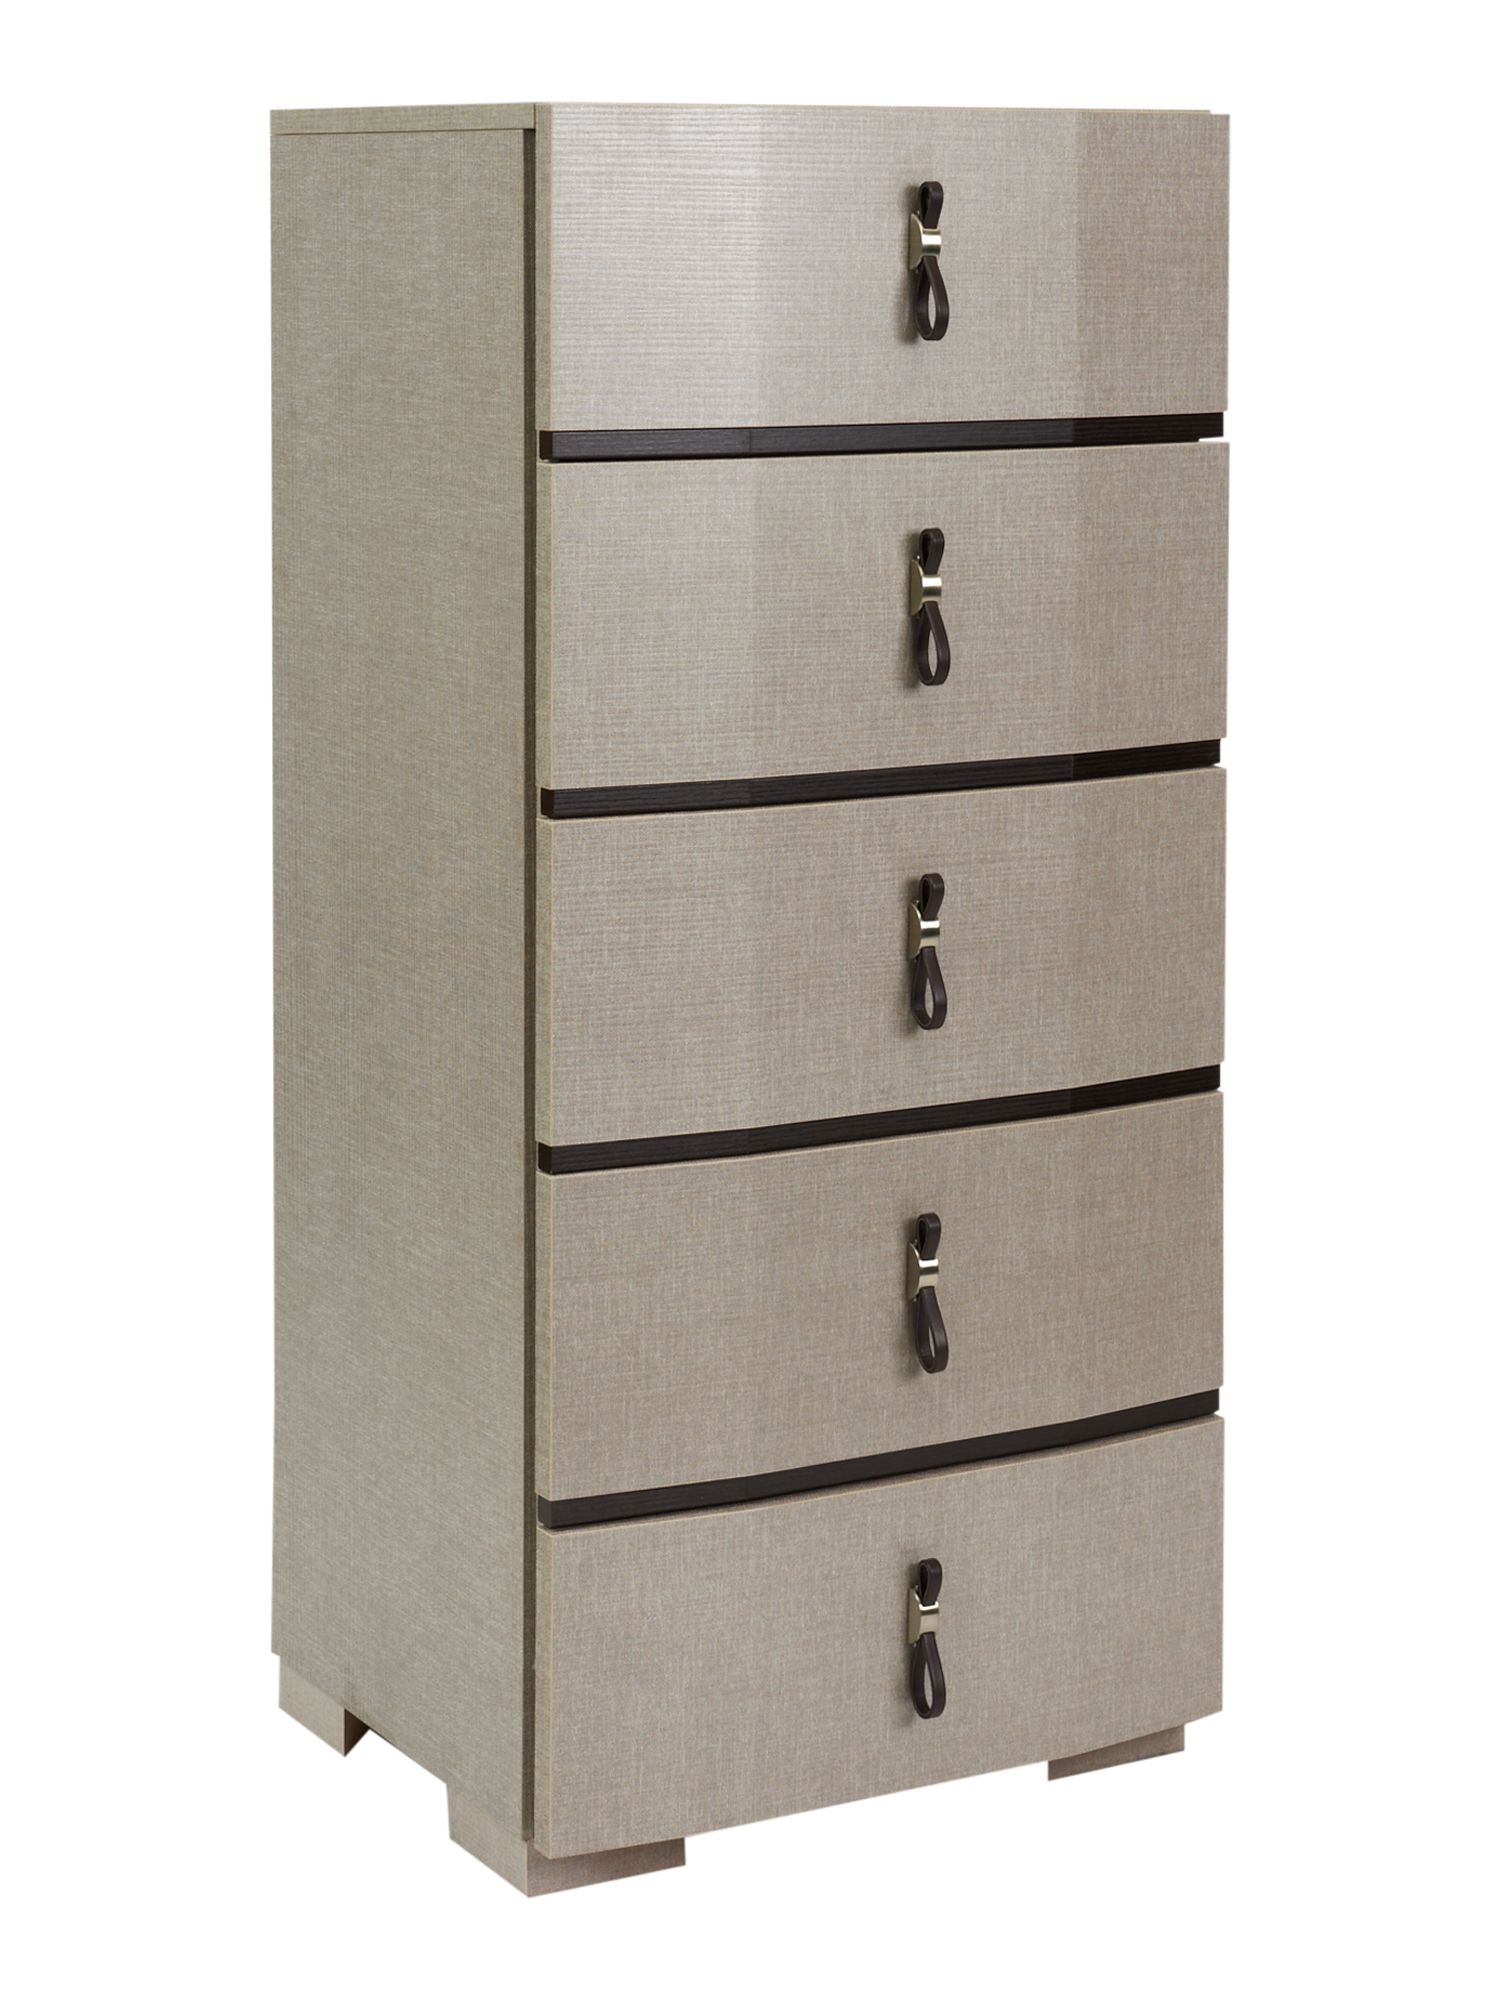 Toscana 5 drawer tall chest